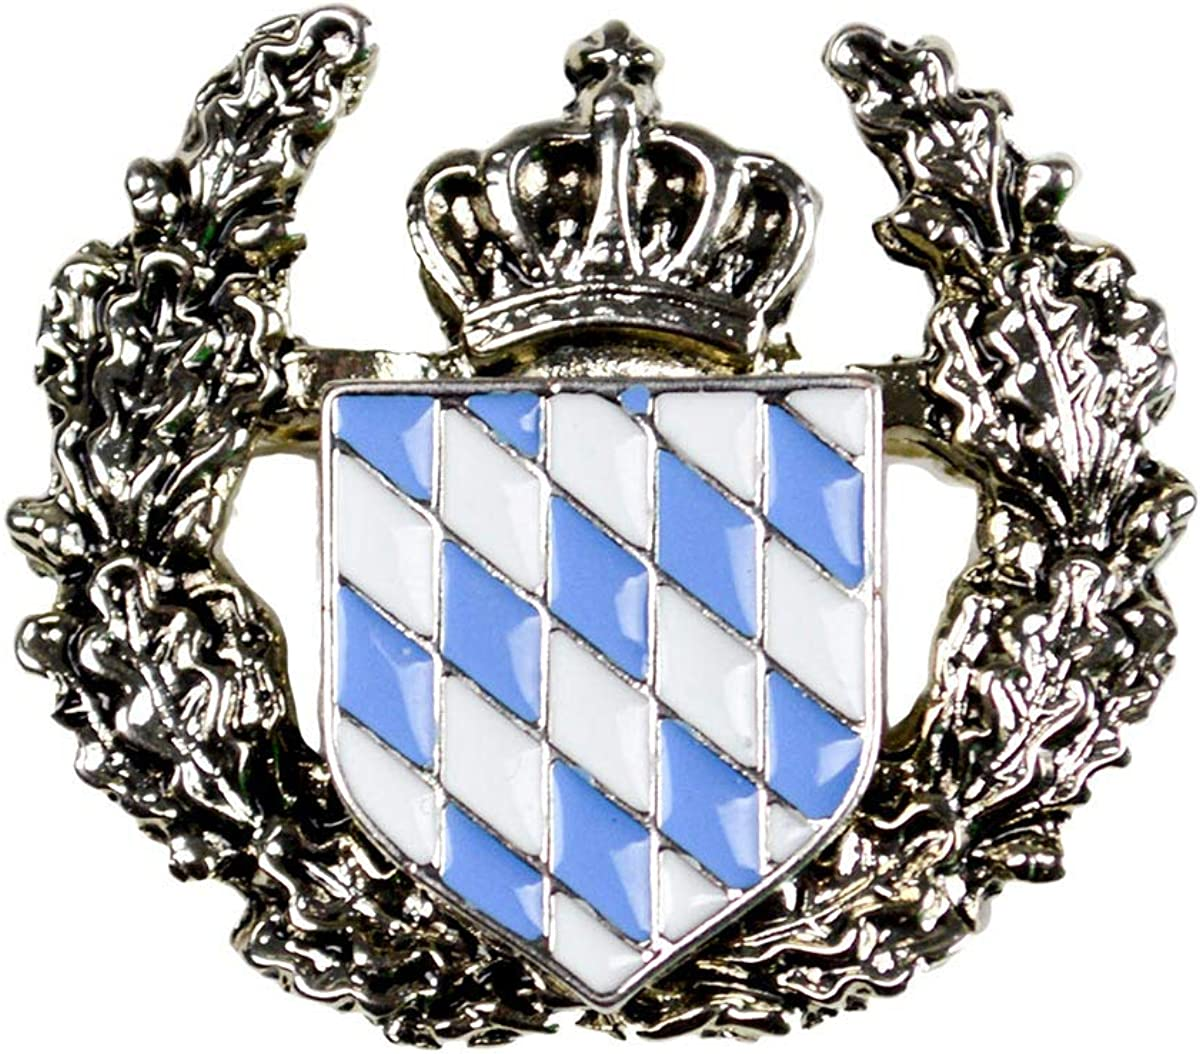 Metal Deluxe Coat of Arms German Bavarian Hat Pin by E.H.G